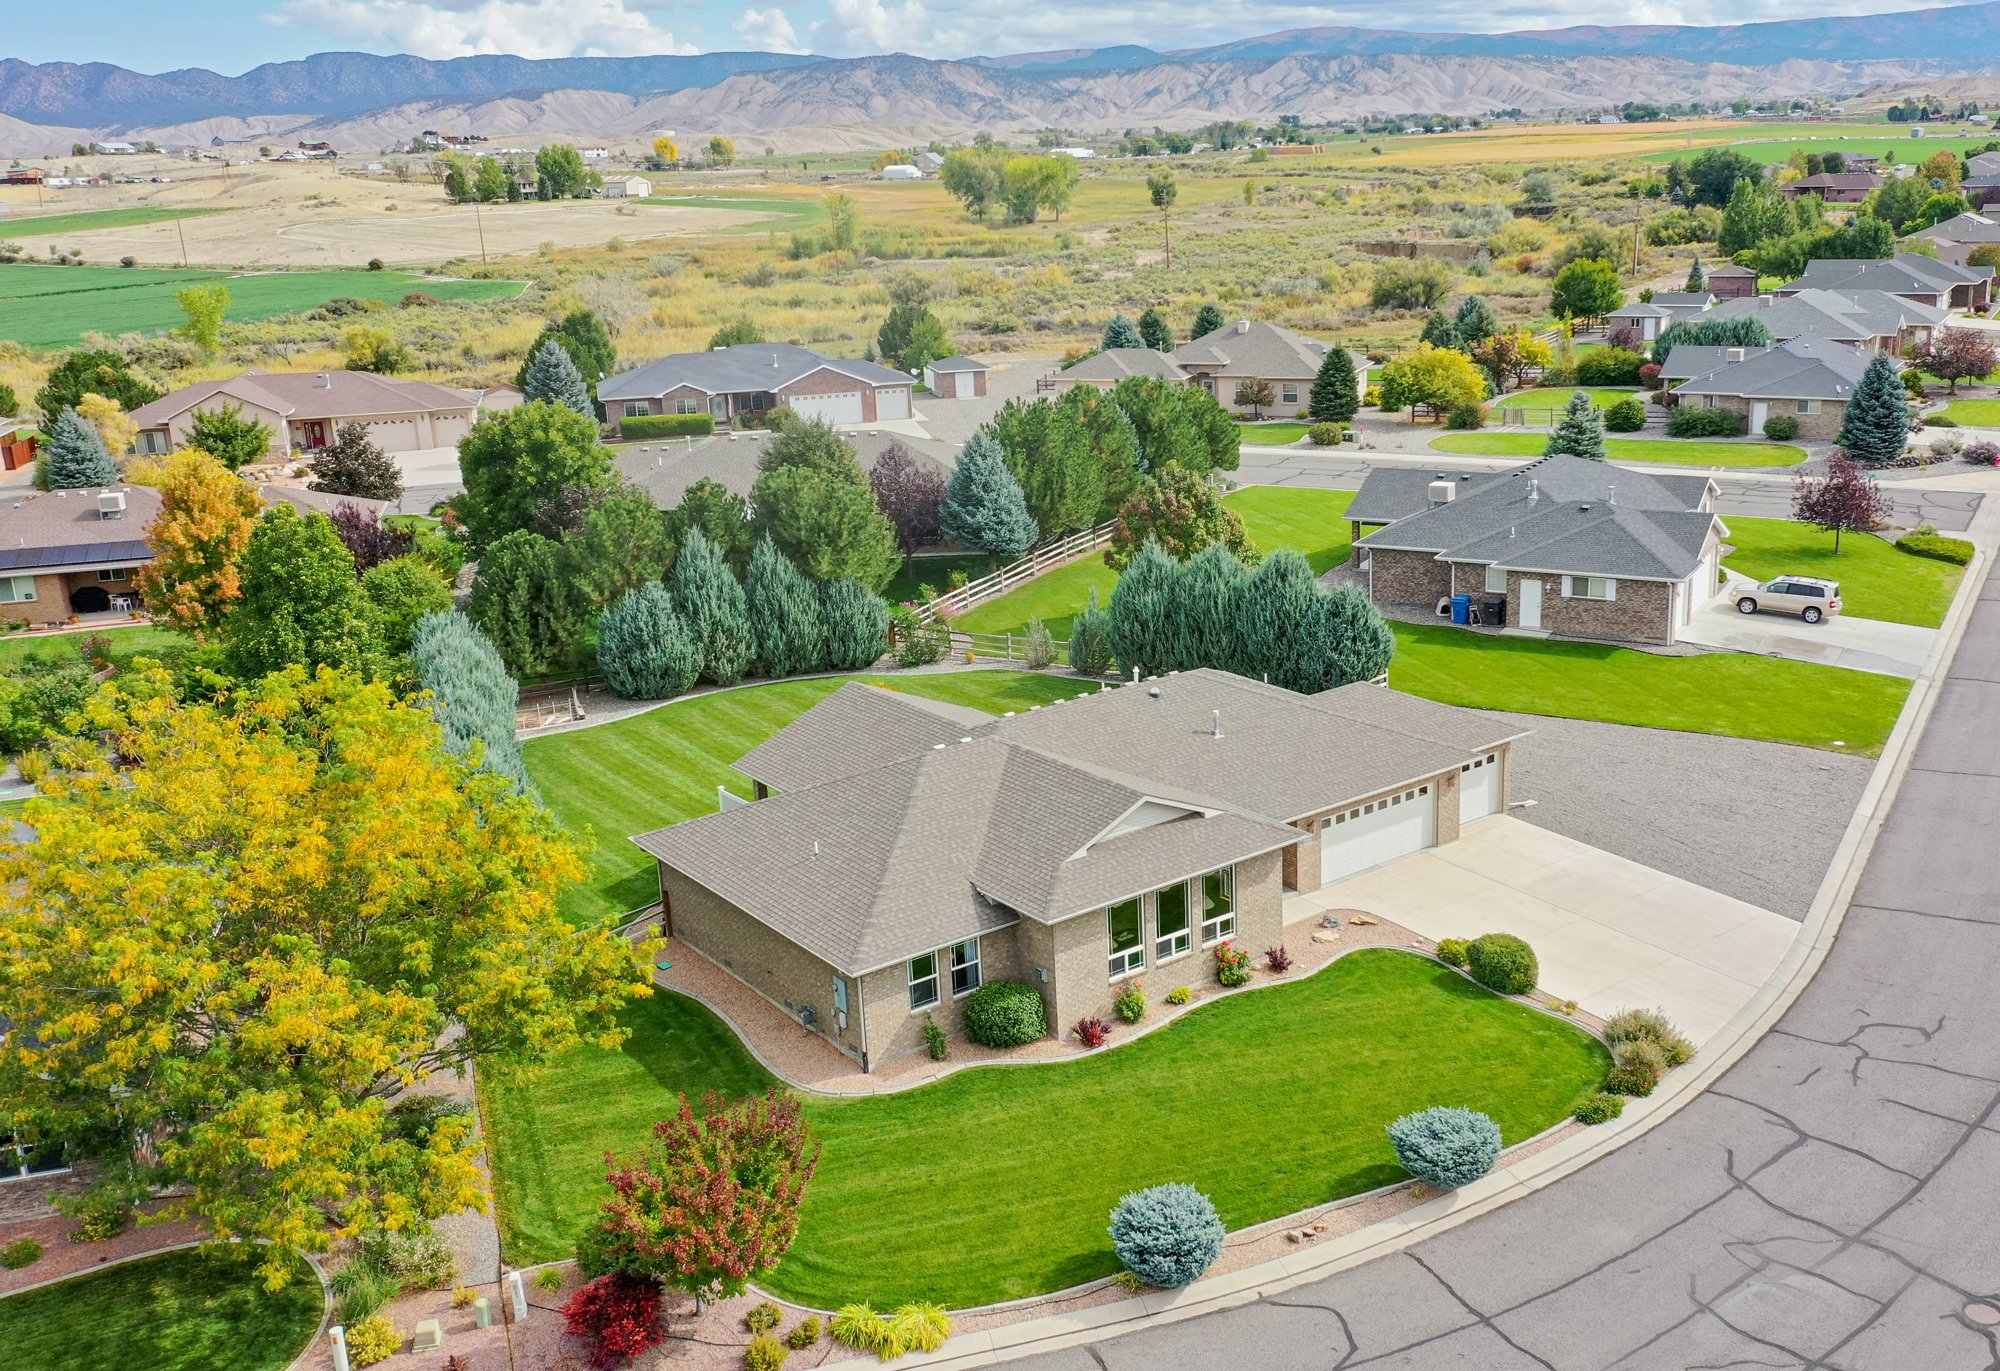 Aerial View Front of Property - 2941 Ivy Dr Montrose, CO 81401 - Atha Team Real Estate